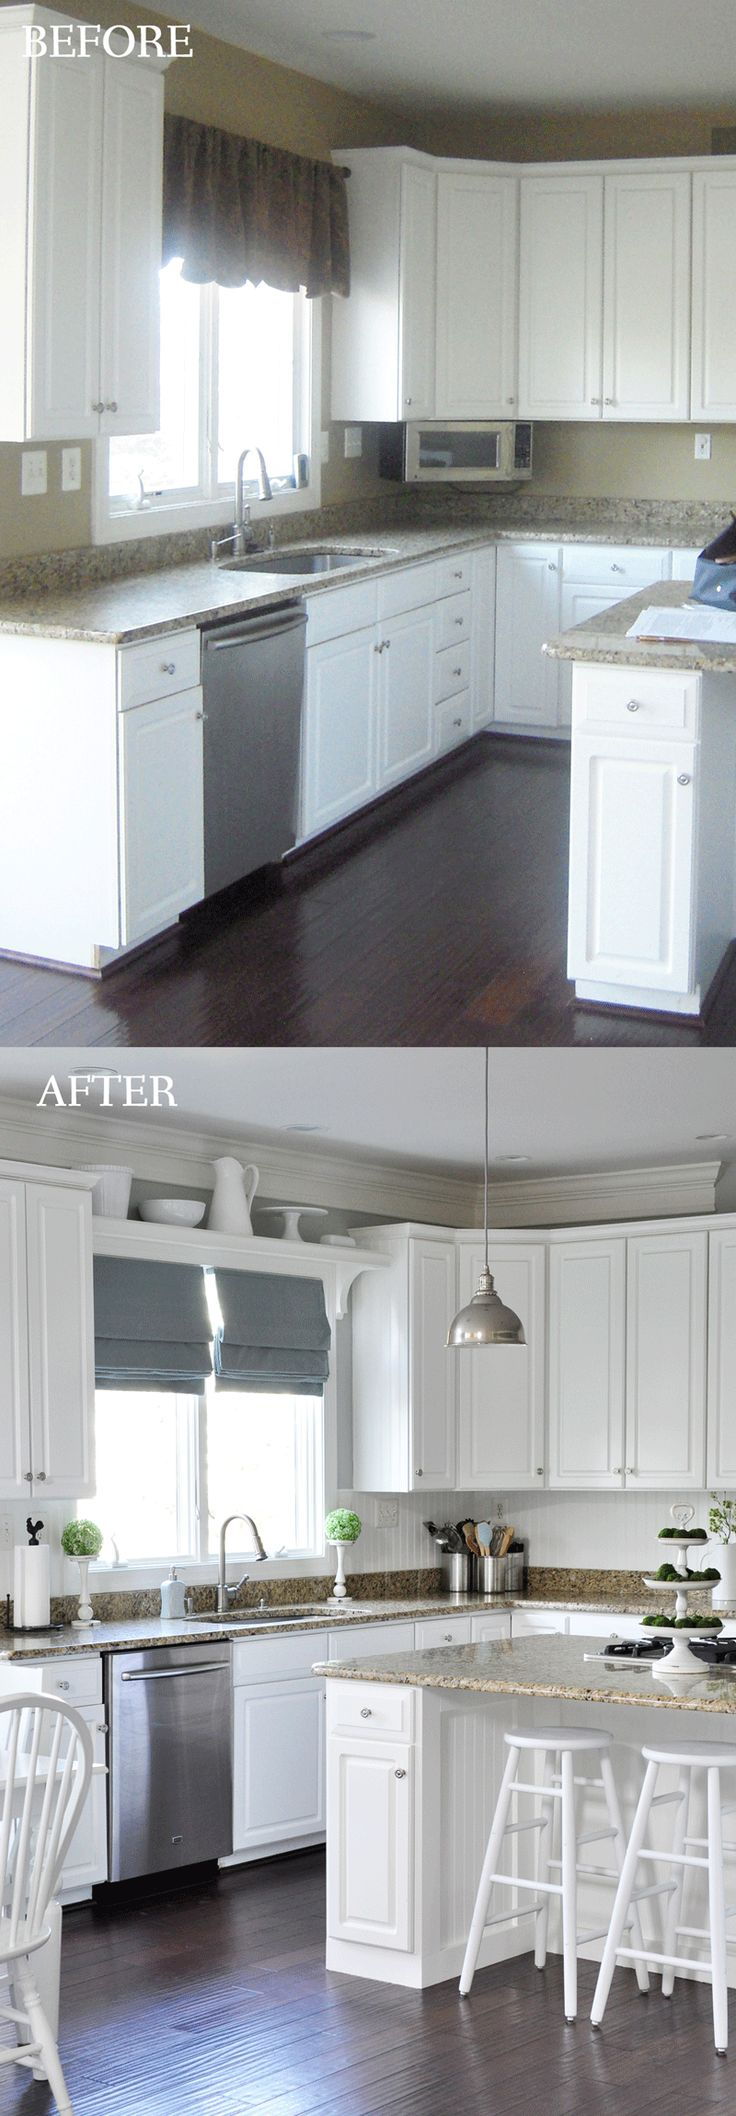 190 best kitchen transformations images on pinterest kitchen best of 2015 diy projects that will make you say